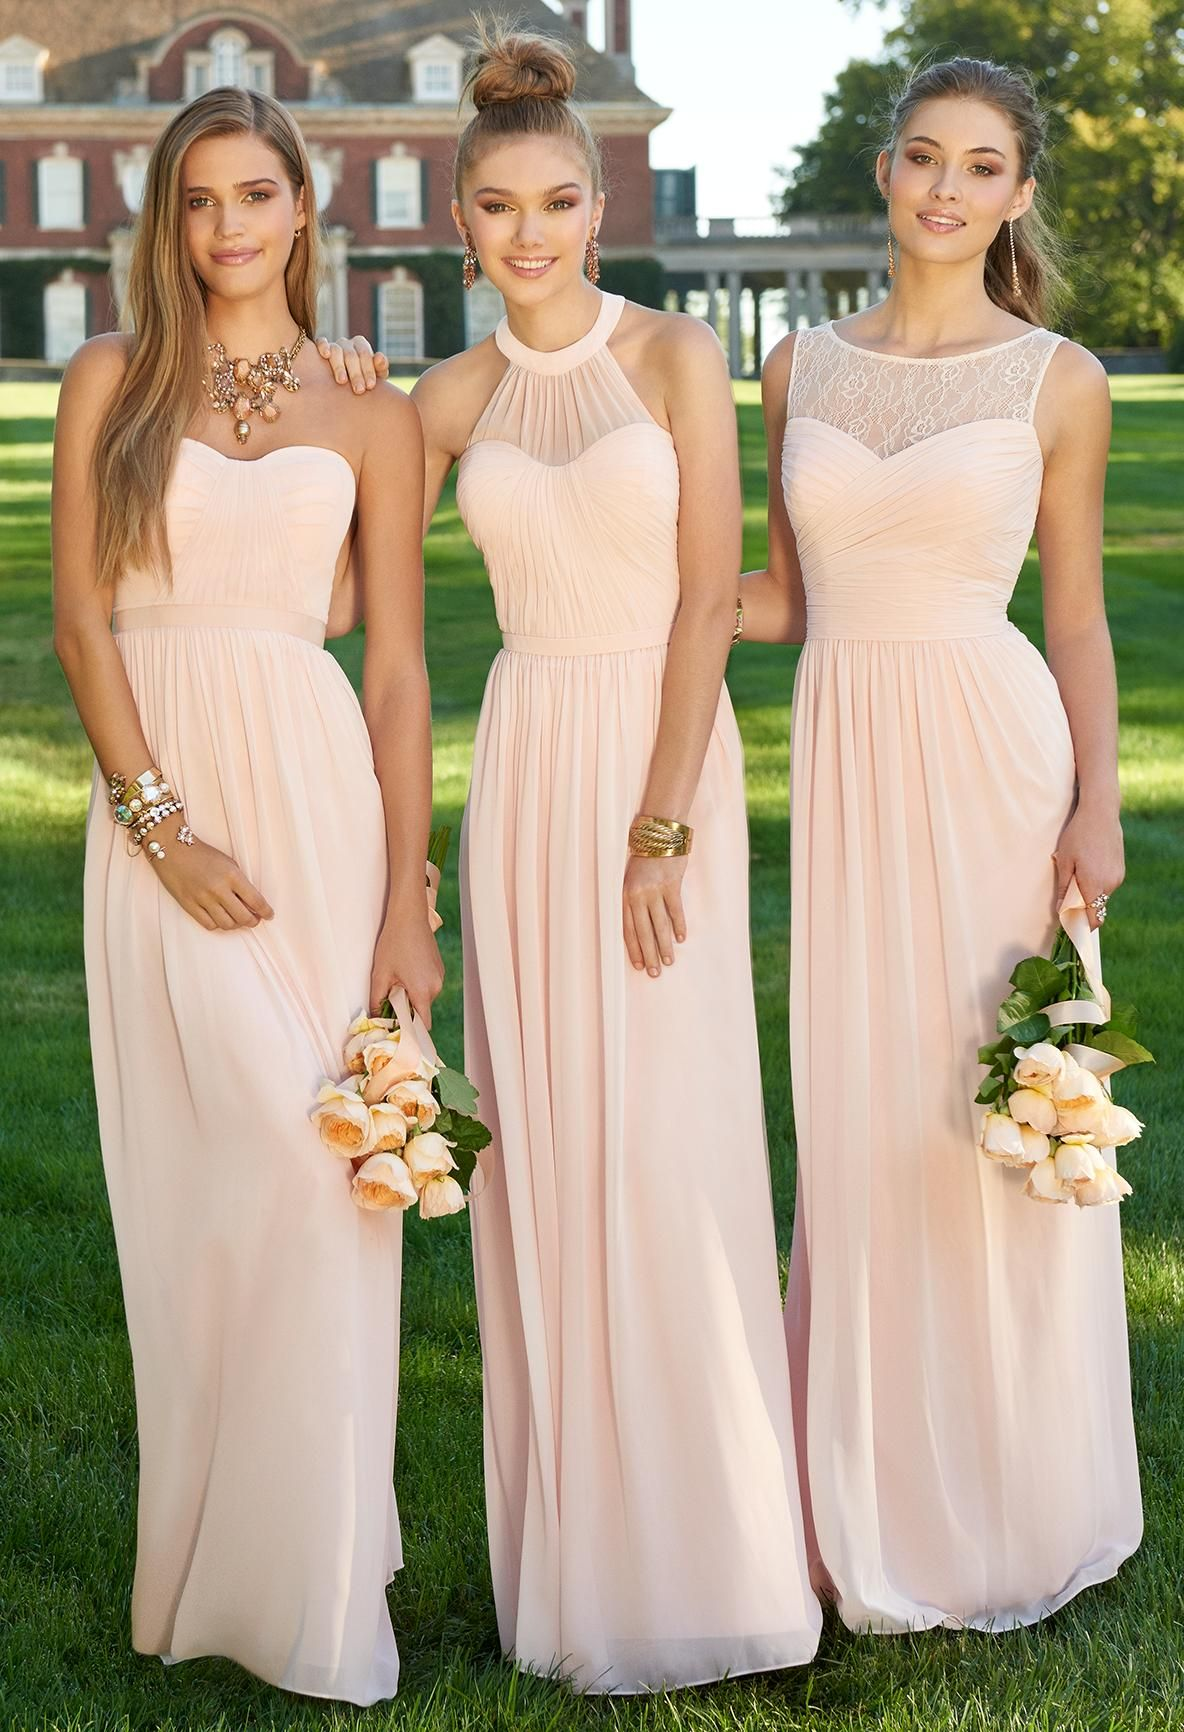 b624788d64 Nude and Blush Gowns in 2019 | I DO! | Wedding dresses, Bridesmaid ...